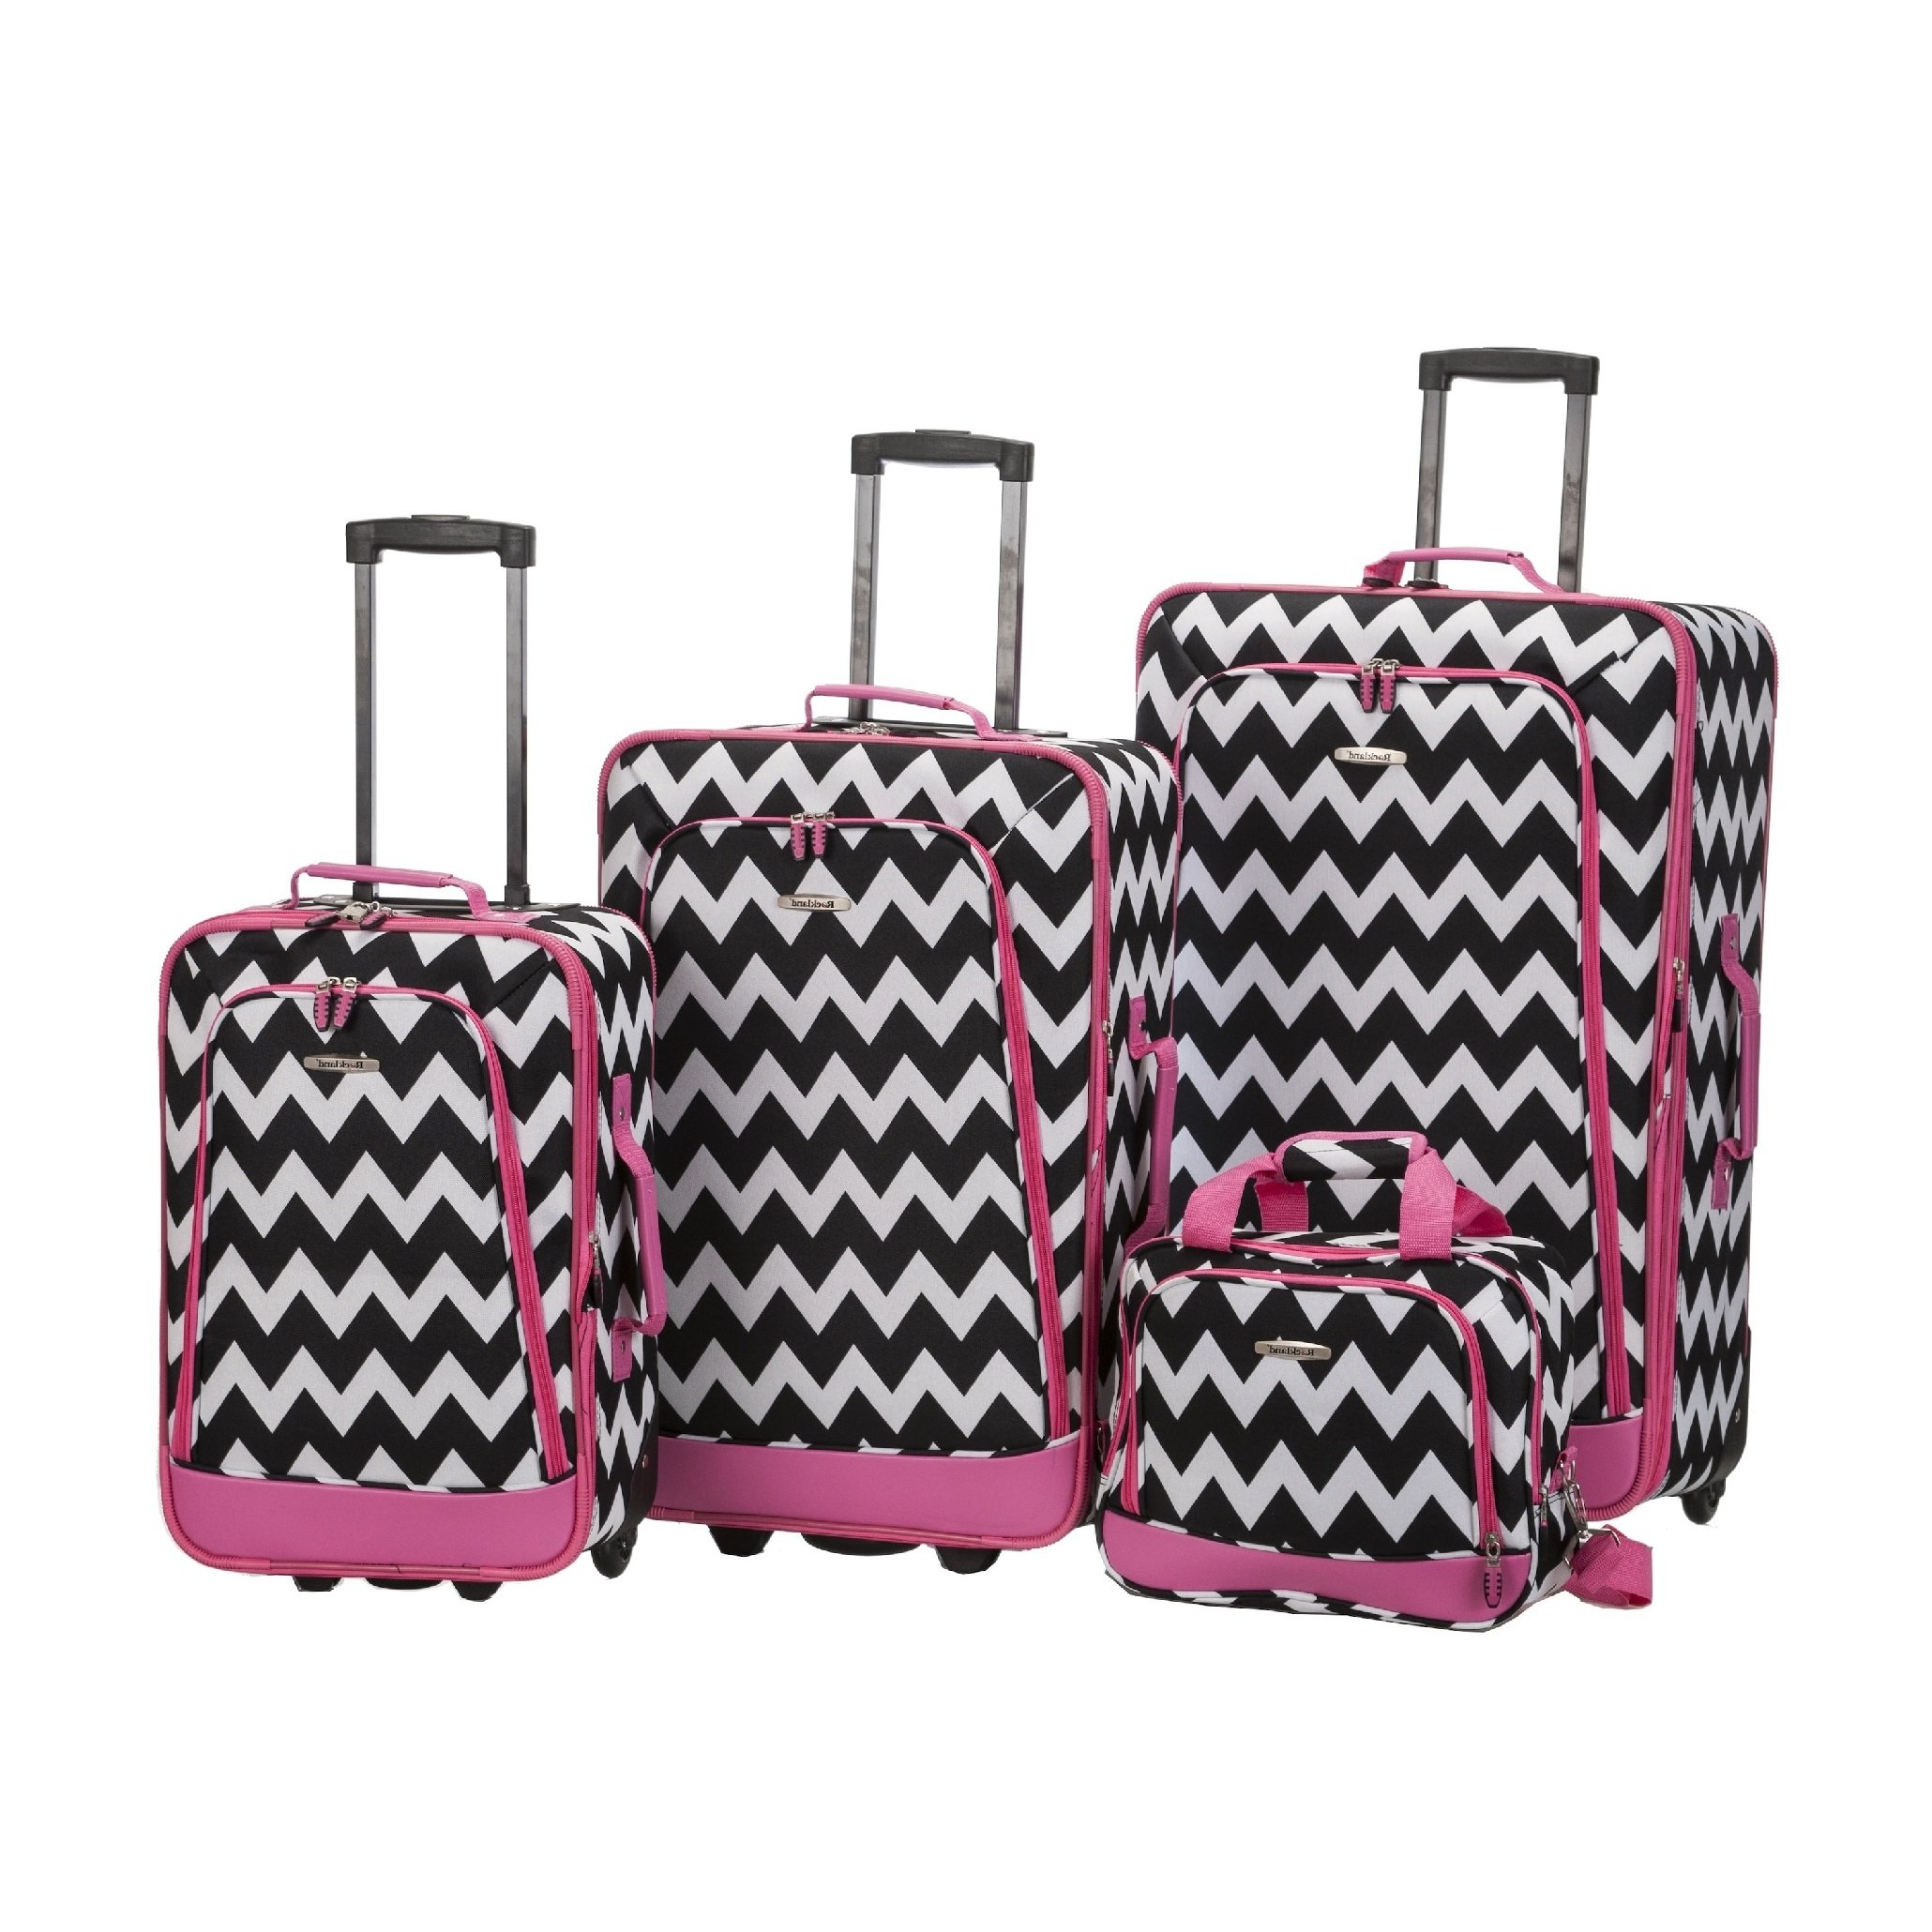 4 Piece Geometric Chevron Theme Lightweight Expandable Carry On Luggage Set Suitcases, Modern Geo Zigzag Herringbone Motif, Softside, Fashionable, Multi Compartment, Handle Travel Cases, Black, Pink